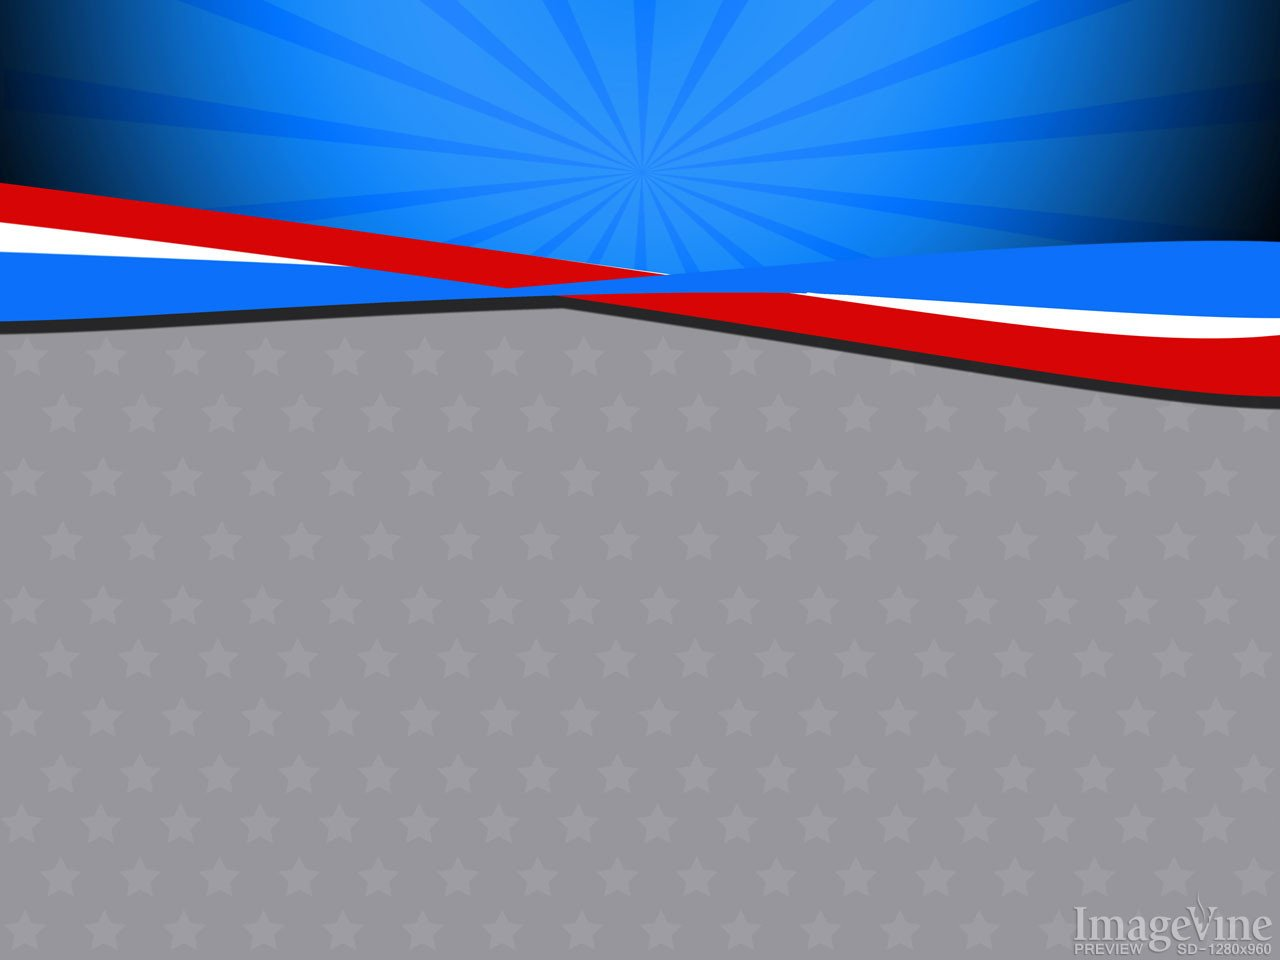 Patriotic Abstract Backgrounds ImageVine 1280x960